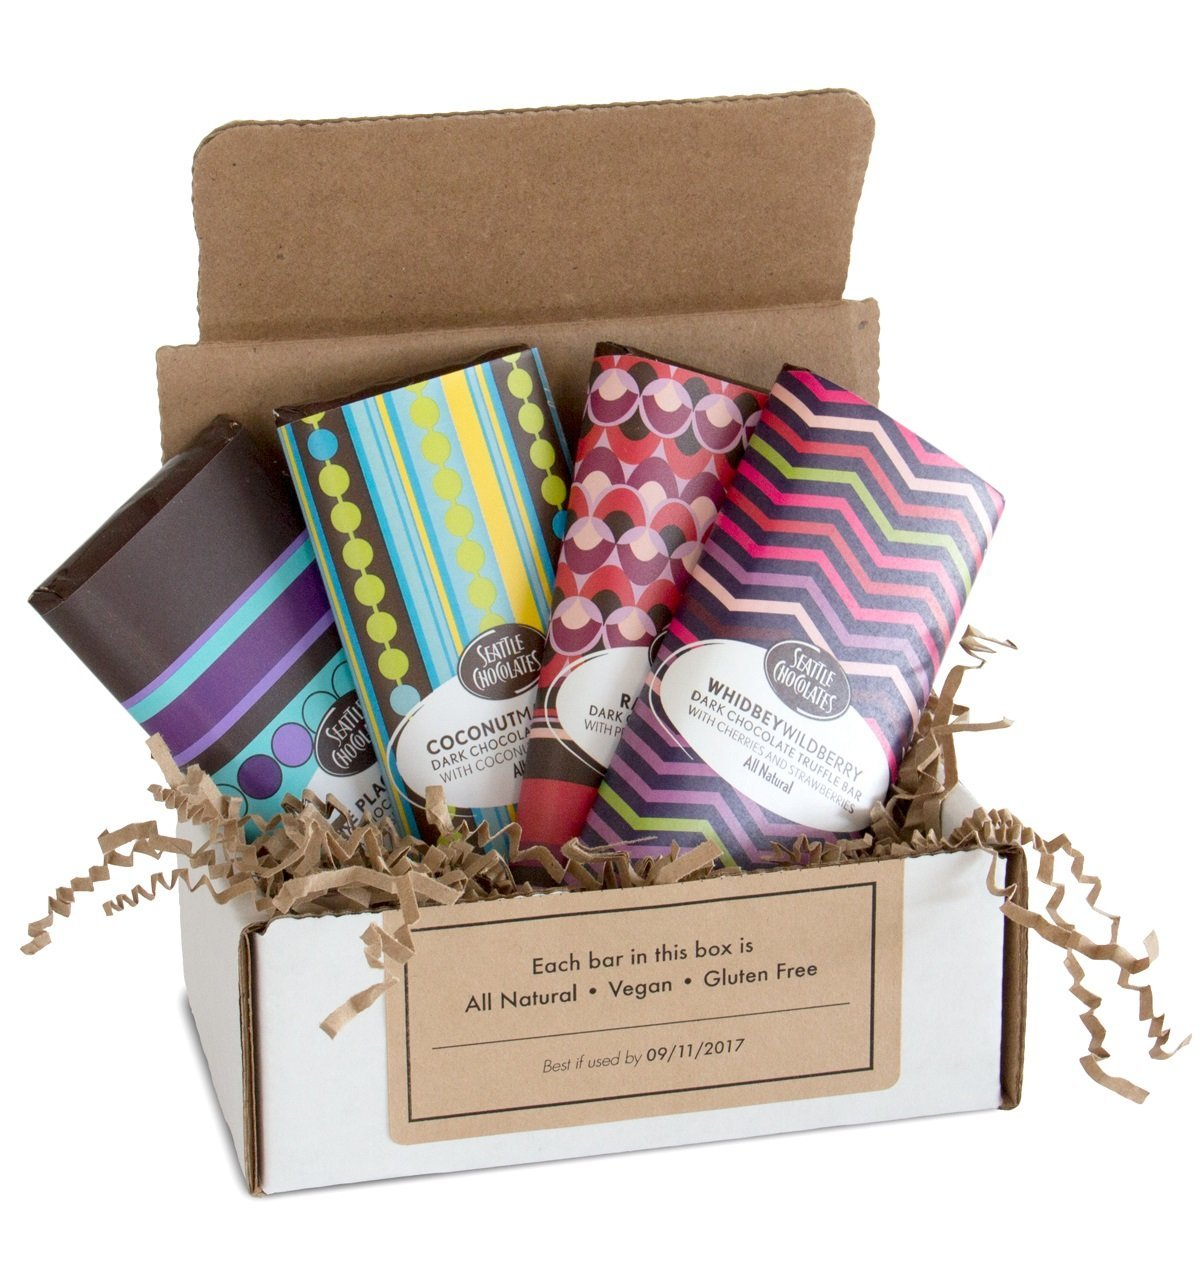 Amazon vegan gift box for dark chocolate and berry lovers amazon vegan gift box for dark chocolate and berry lovers gourmet chocolate truffle bar gift set all natural non gmo and gluten free bundle of 4 negle Gallery